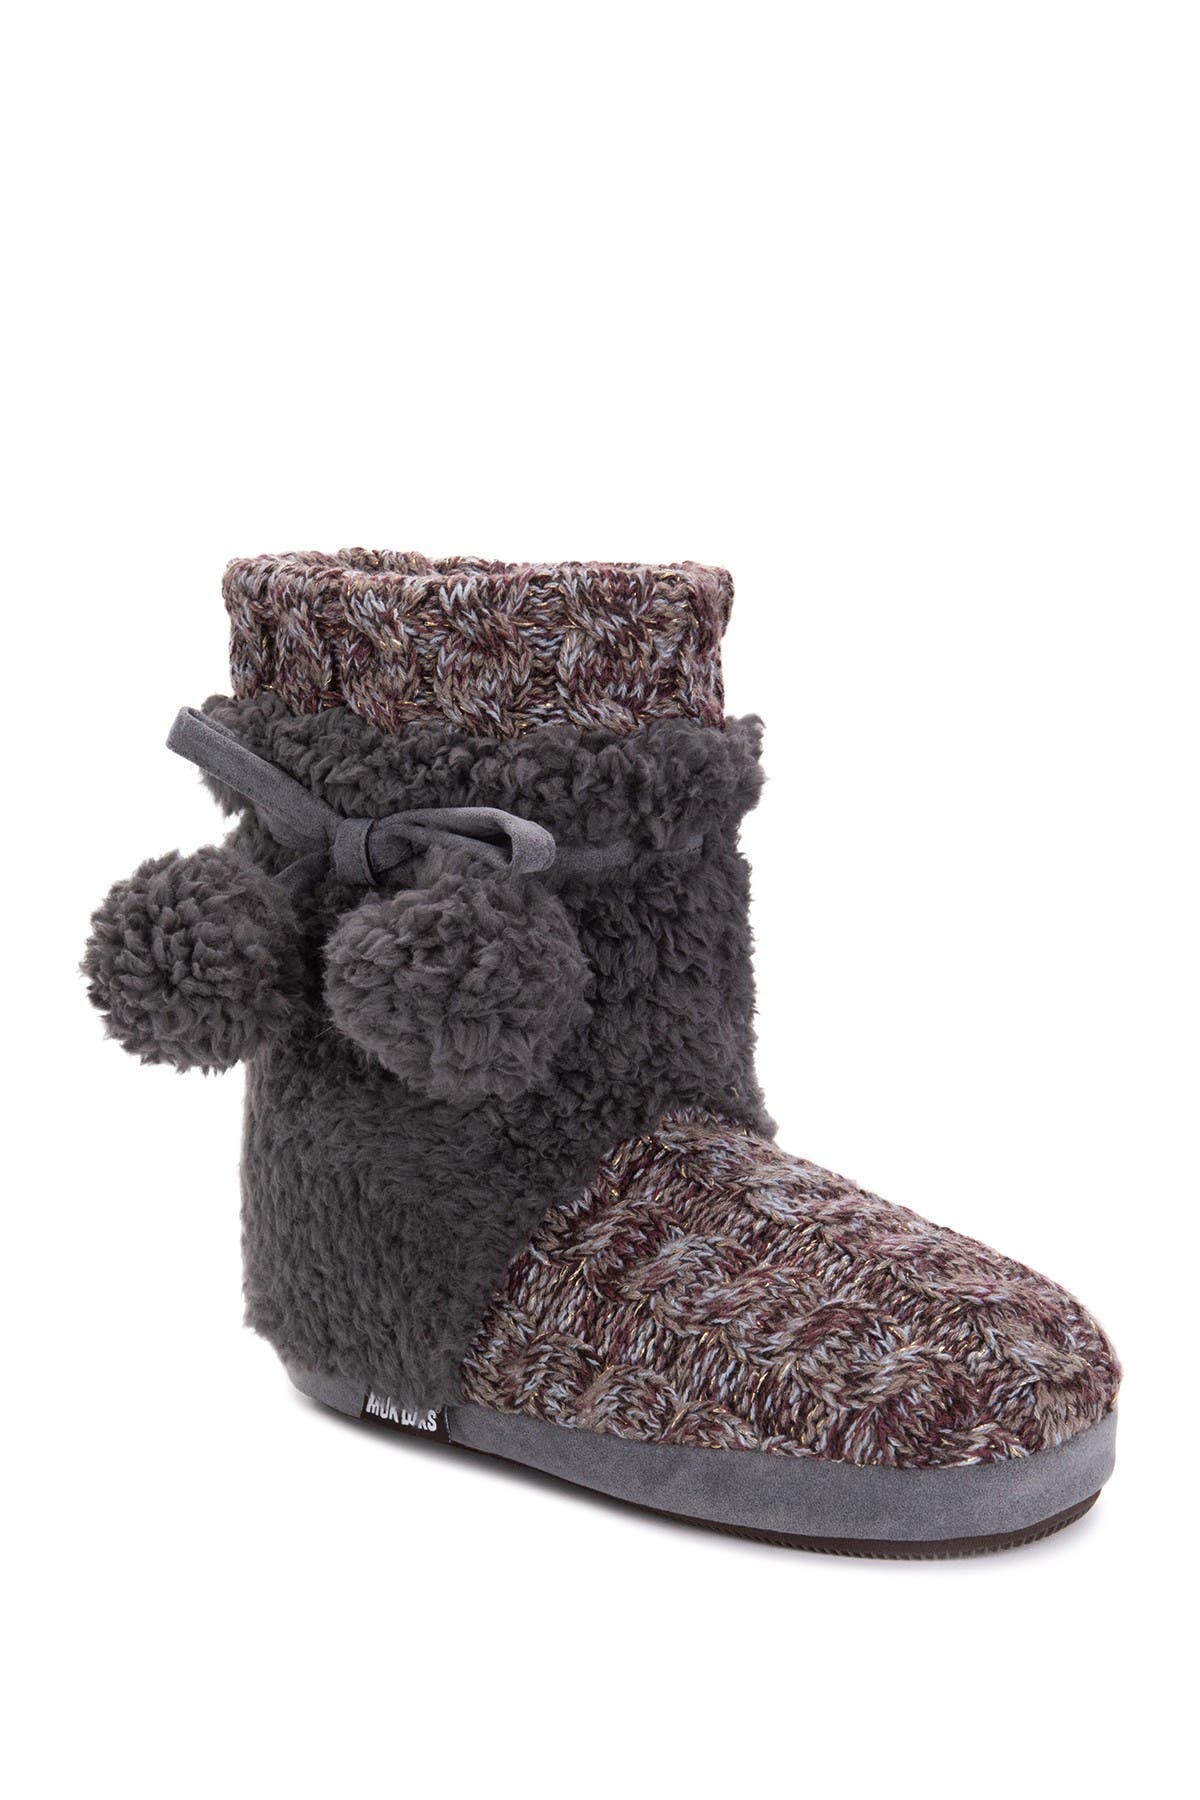 Image of MUK LUKS Delanie Faux Fur Pompom Knit Boot Slipper